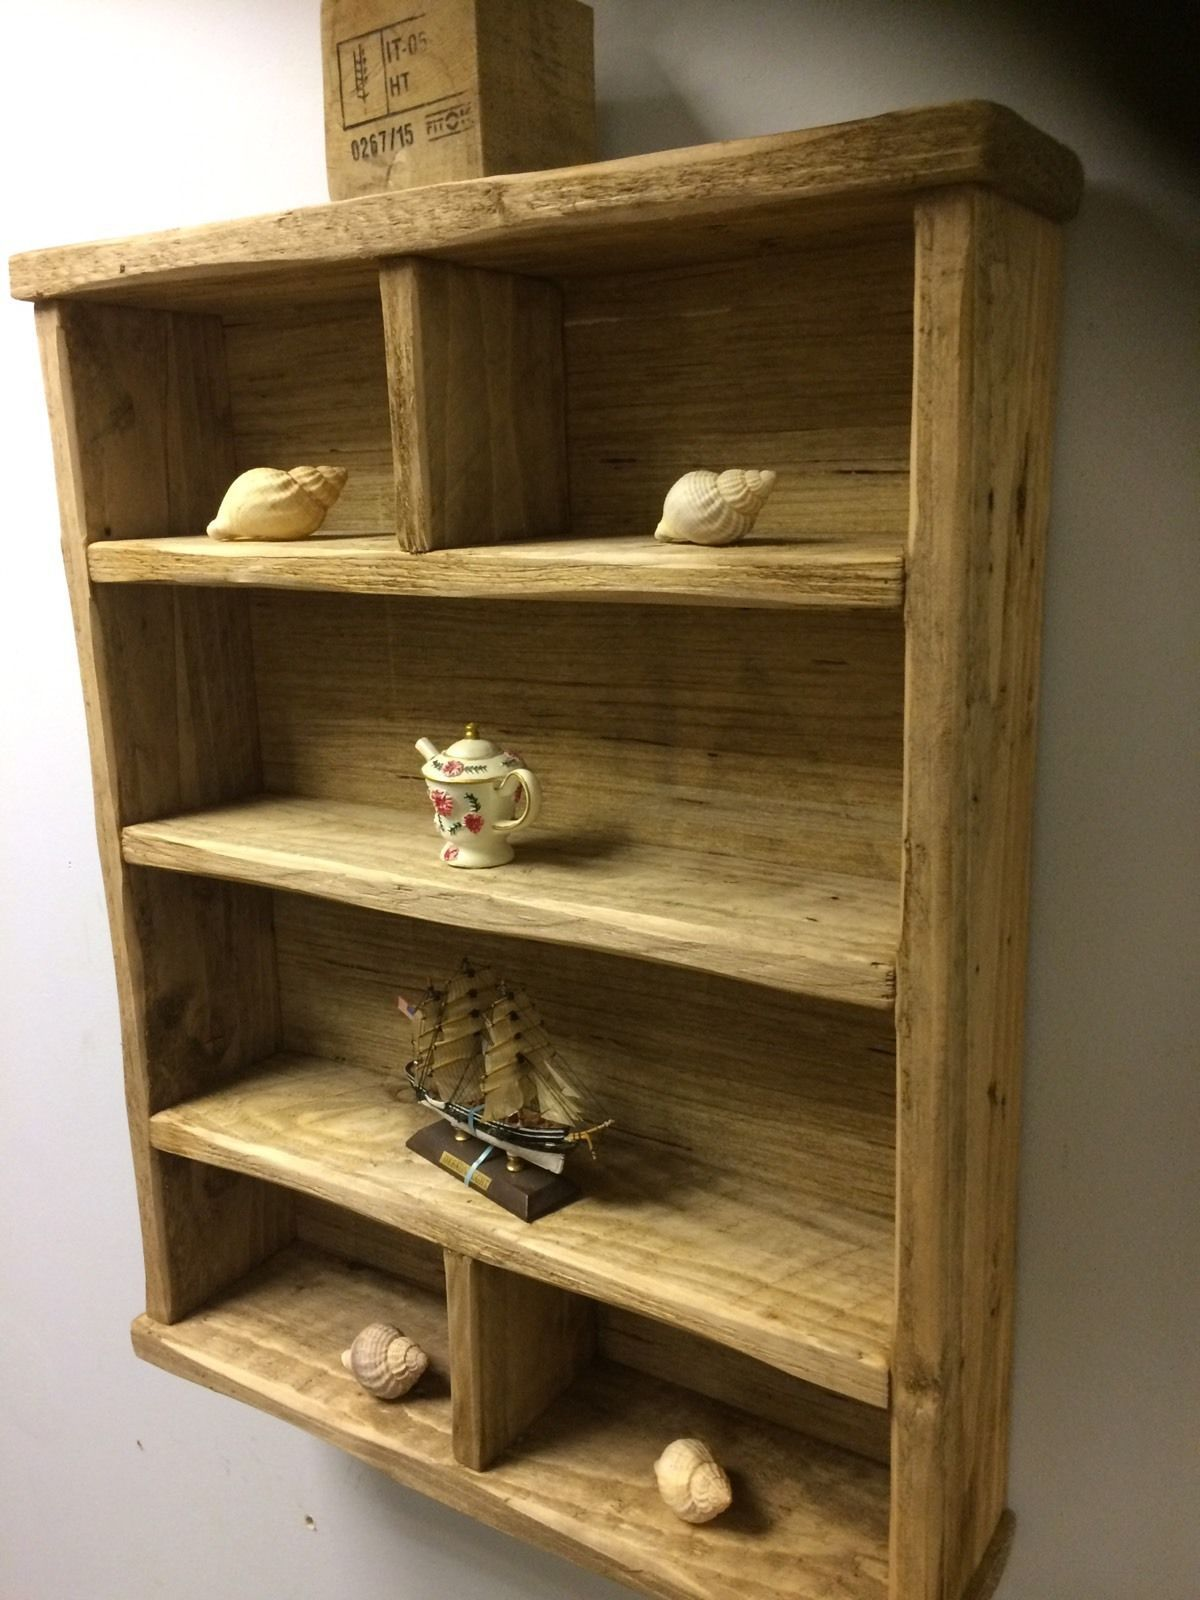 IT IS HOWEVER A VERY GOOD SOLID SHELF. it is a unique shelf that will stand out wherever its located in your home. Rustic oak wax to protection the wood. This unique handmade shelf. You will not find this type of product anywhere else as its personally designed and put together. | eBay!